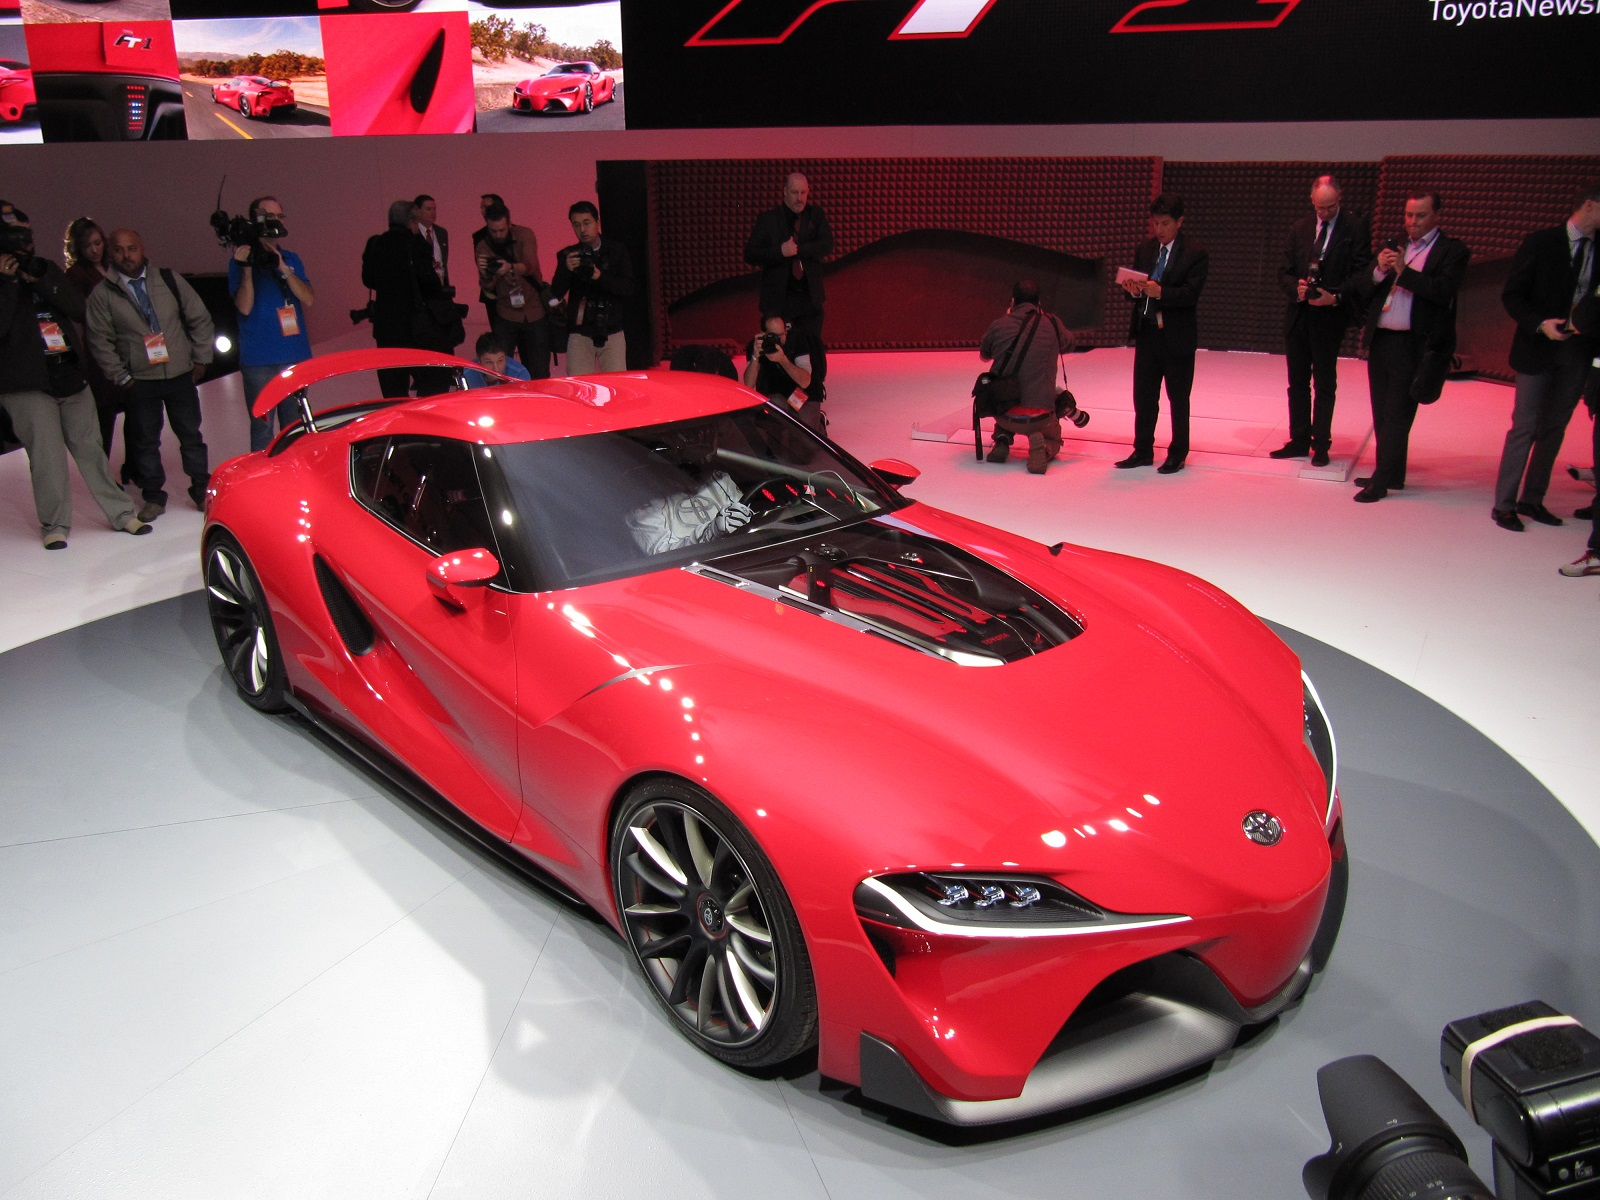 Toyota FT 1 Concept, 2015 Corvette Z06, 2015 Mustang Live Photos: Car News  Headlines